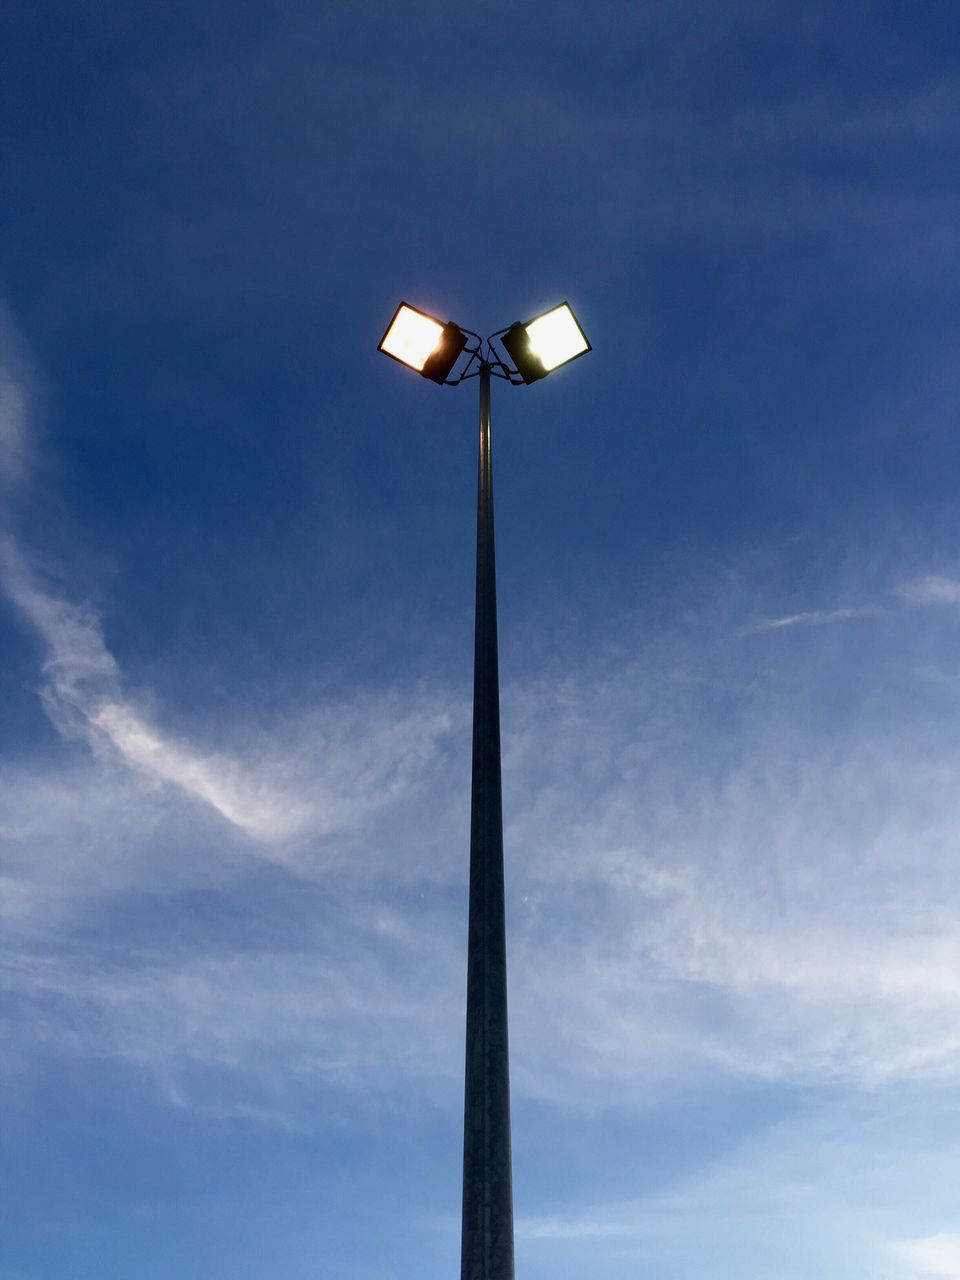 Low Angle View Halogen Light Against Sky